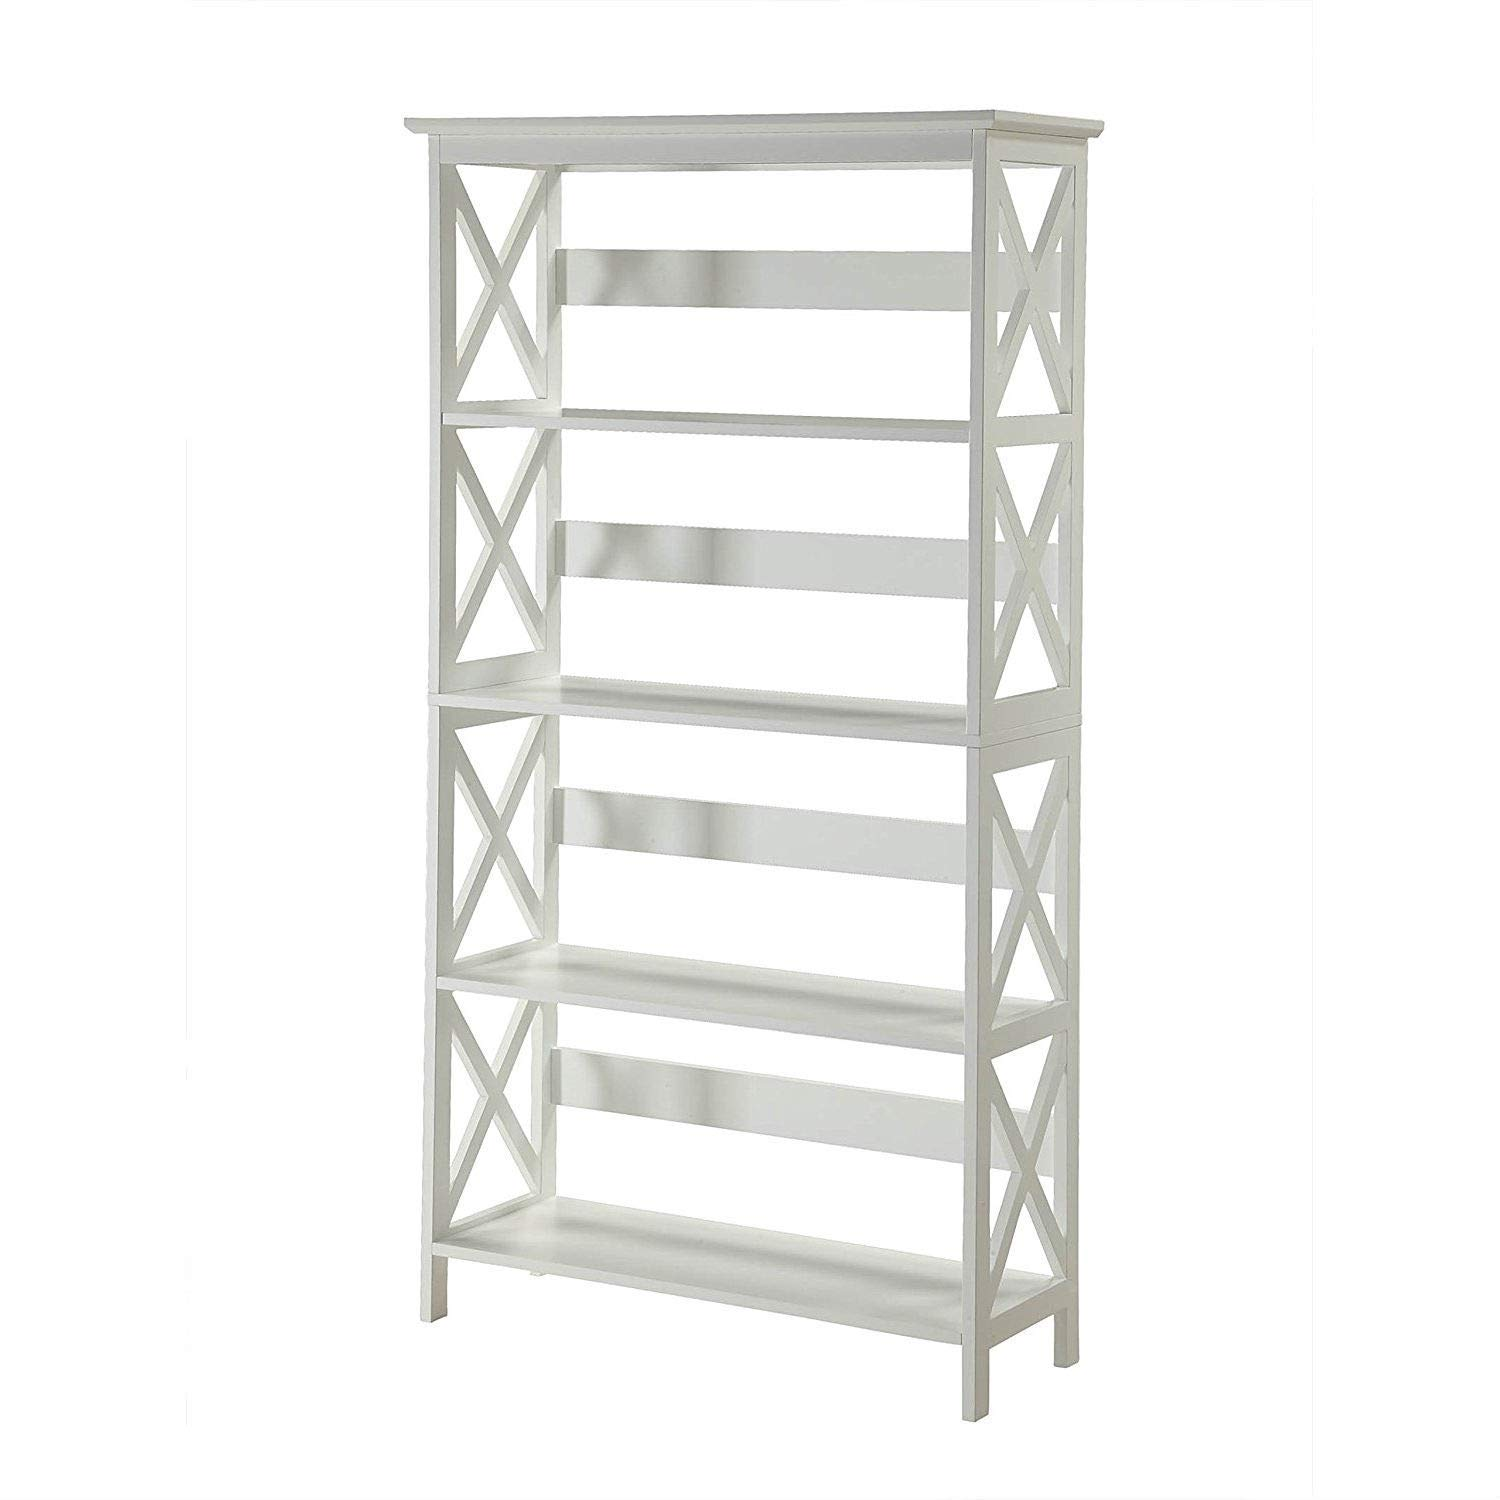 Trustpurchase Glossy White 5-Shelf Bookcase, Featuring 5 Spacious Shelves that Allow Plenty of Space for Everything from Books to Collectibles, Easily Fit with Most Decor So You Can Enjoy it for Years